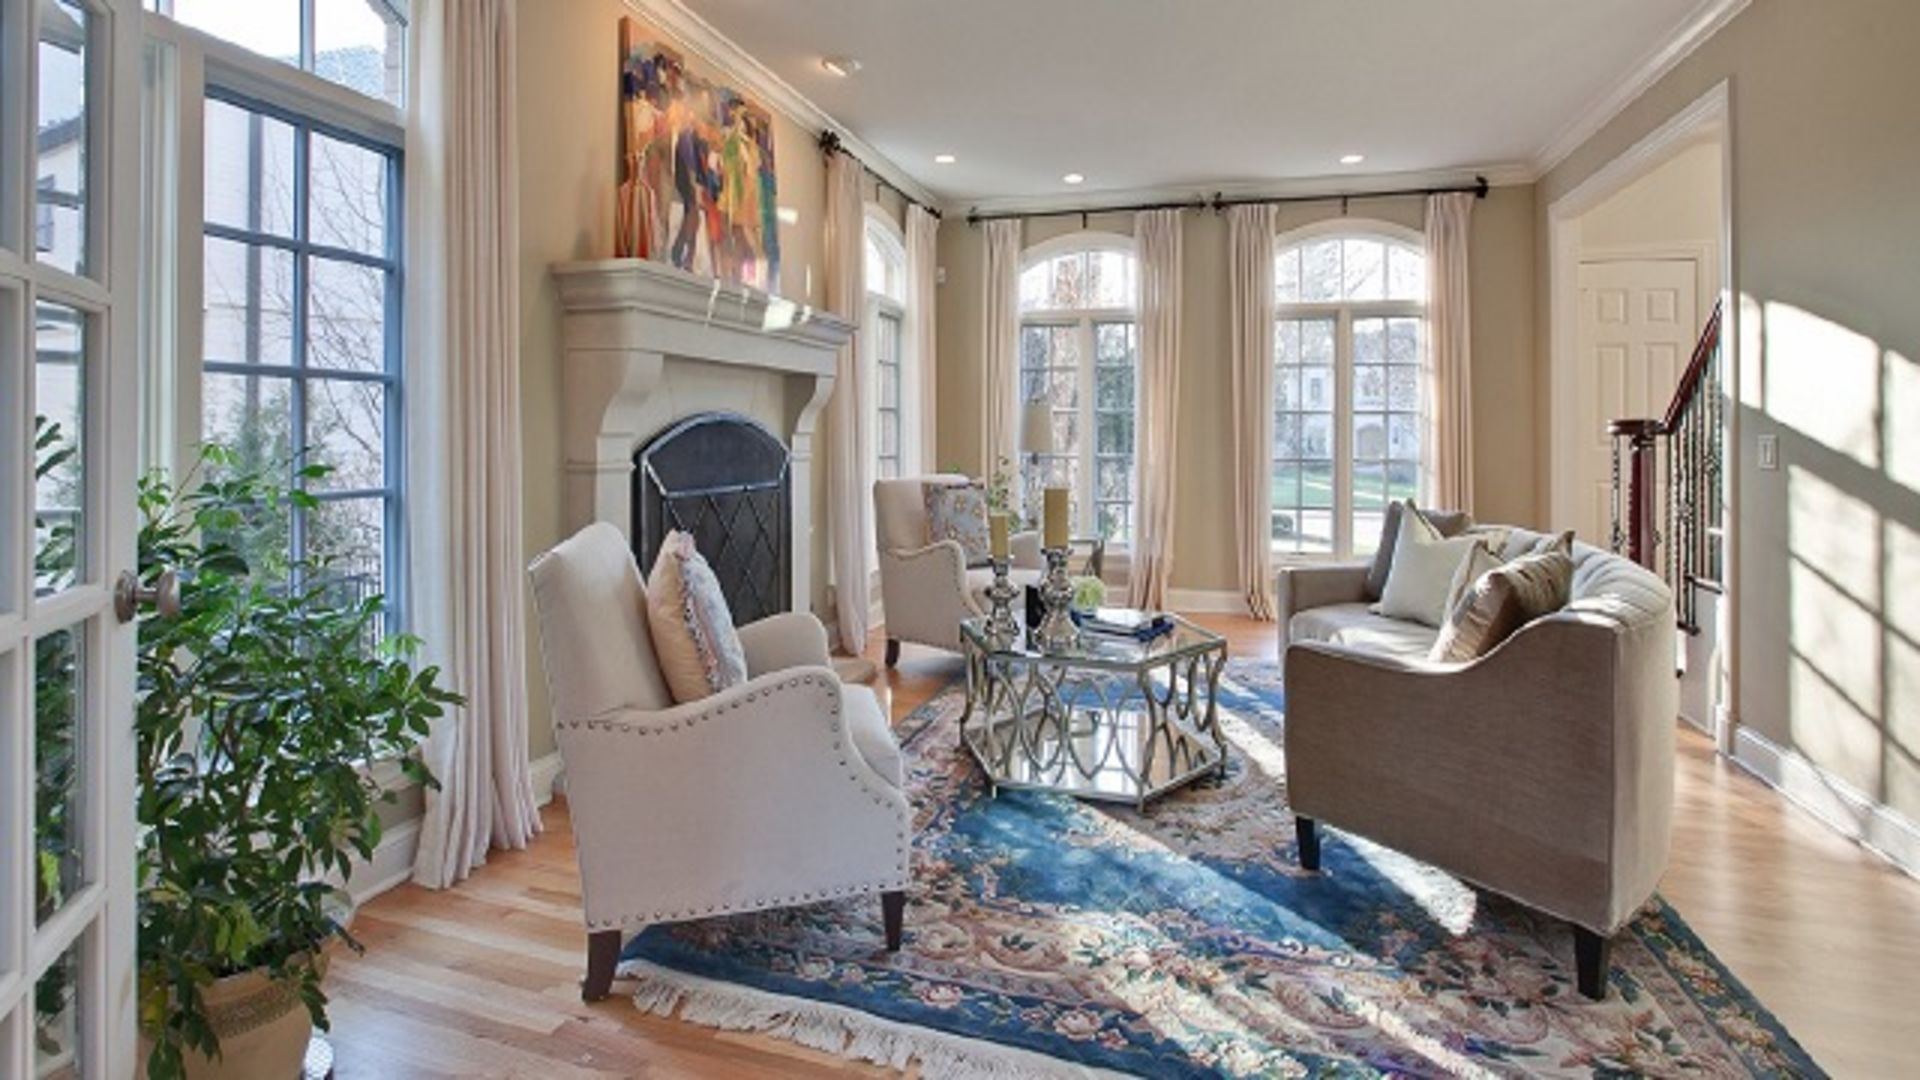 3 Tips to Staging the Inside of Your Home Like a Pro